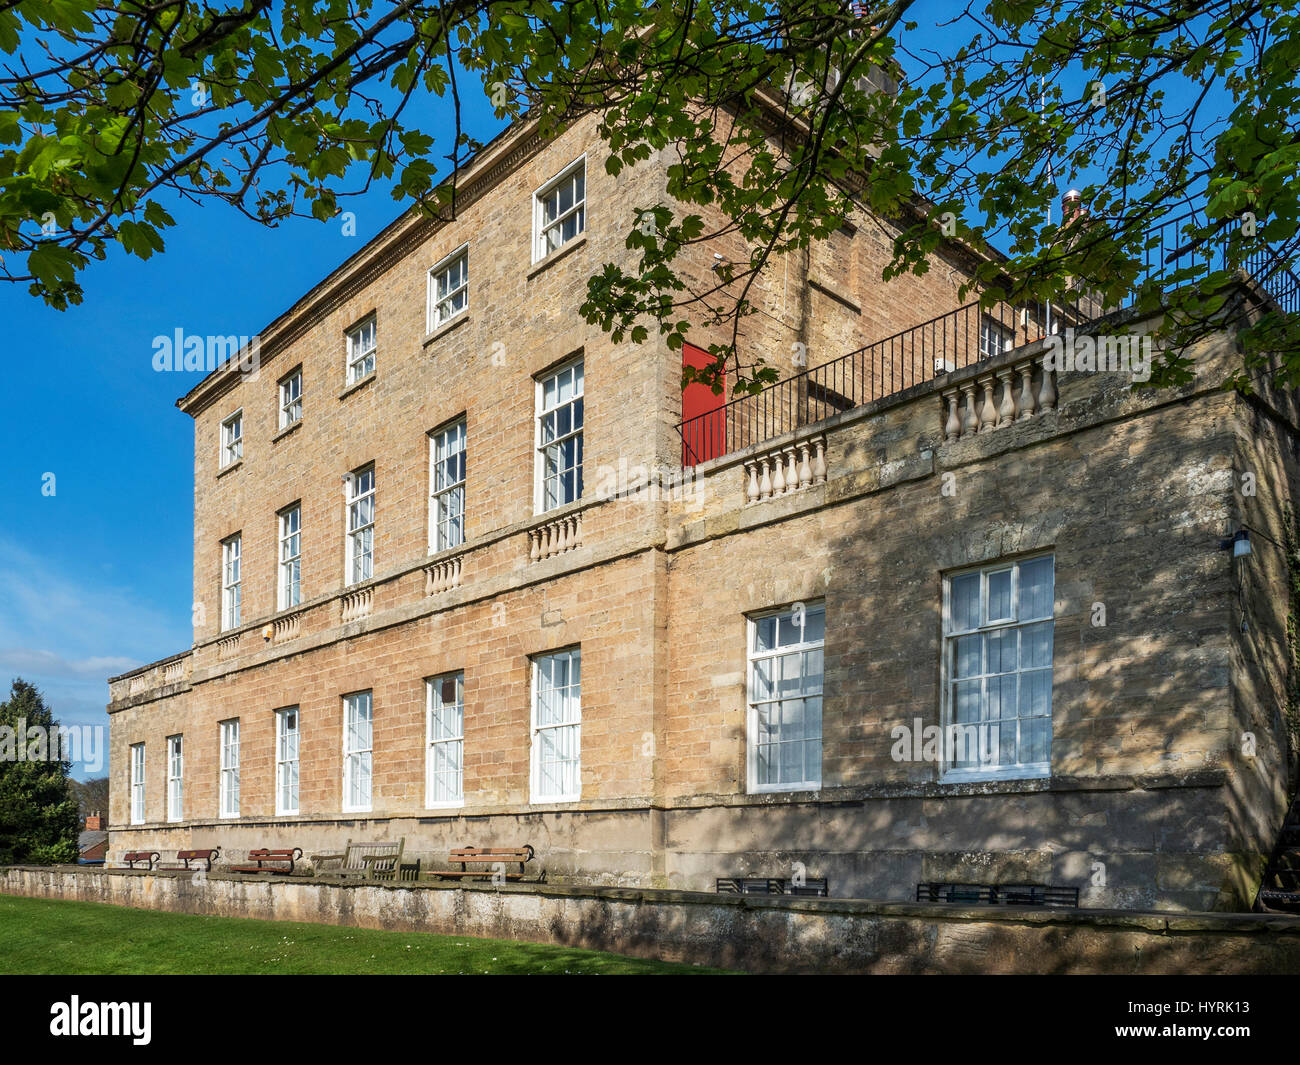 Knaresborough House in Spring Knaresborough North Yorkshire England - Stock Image